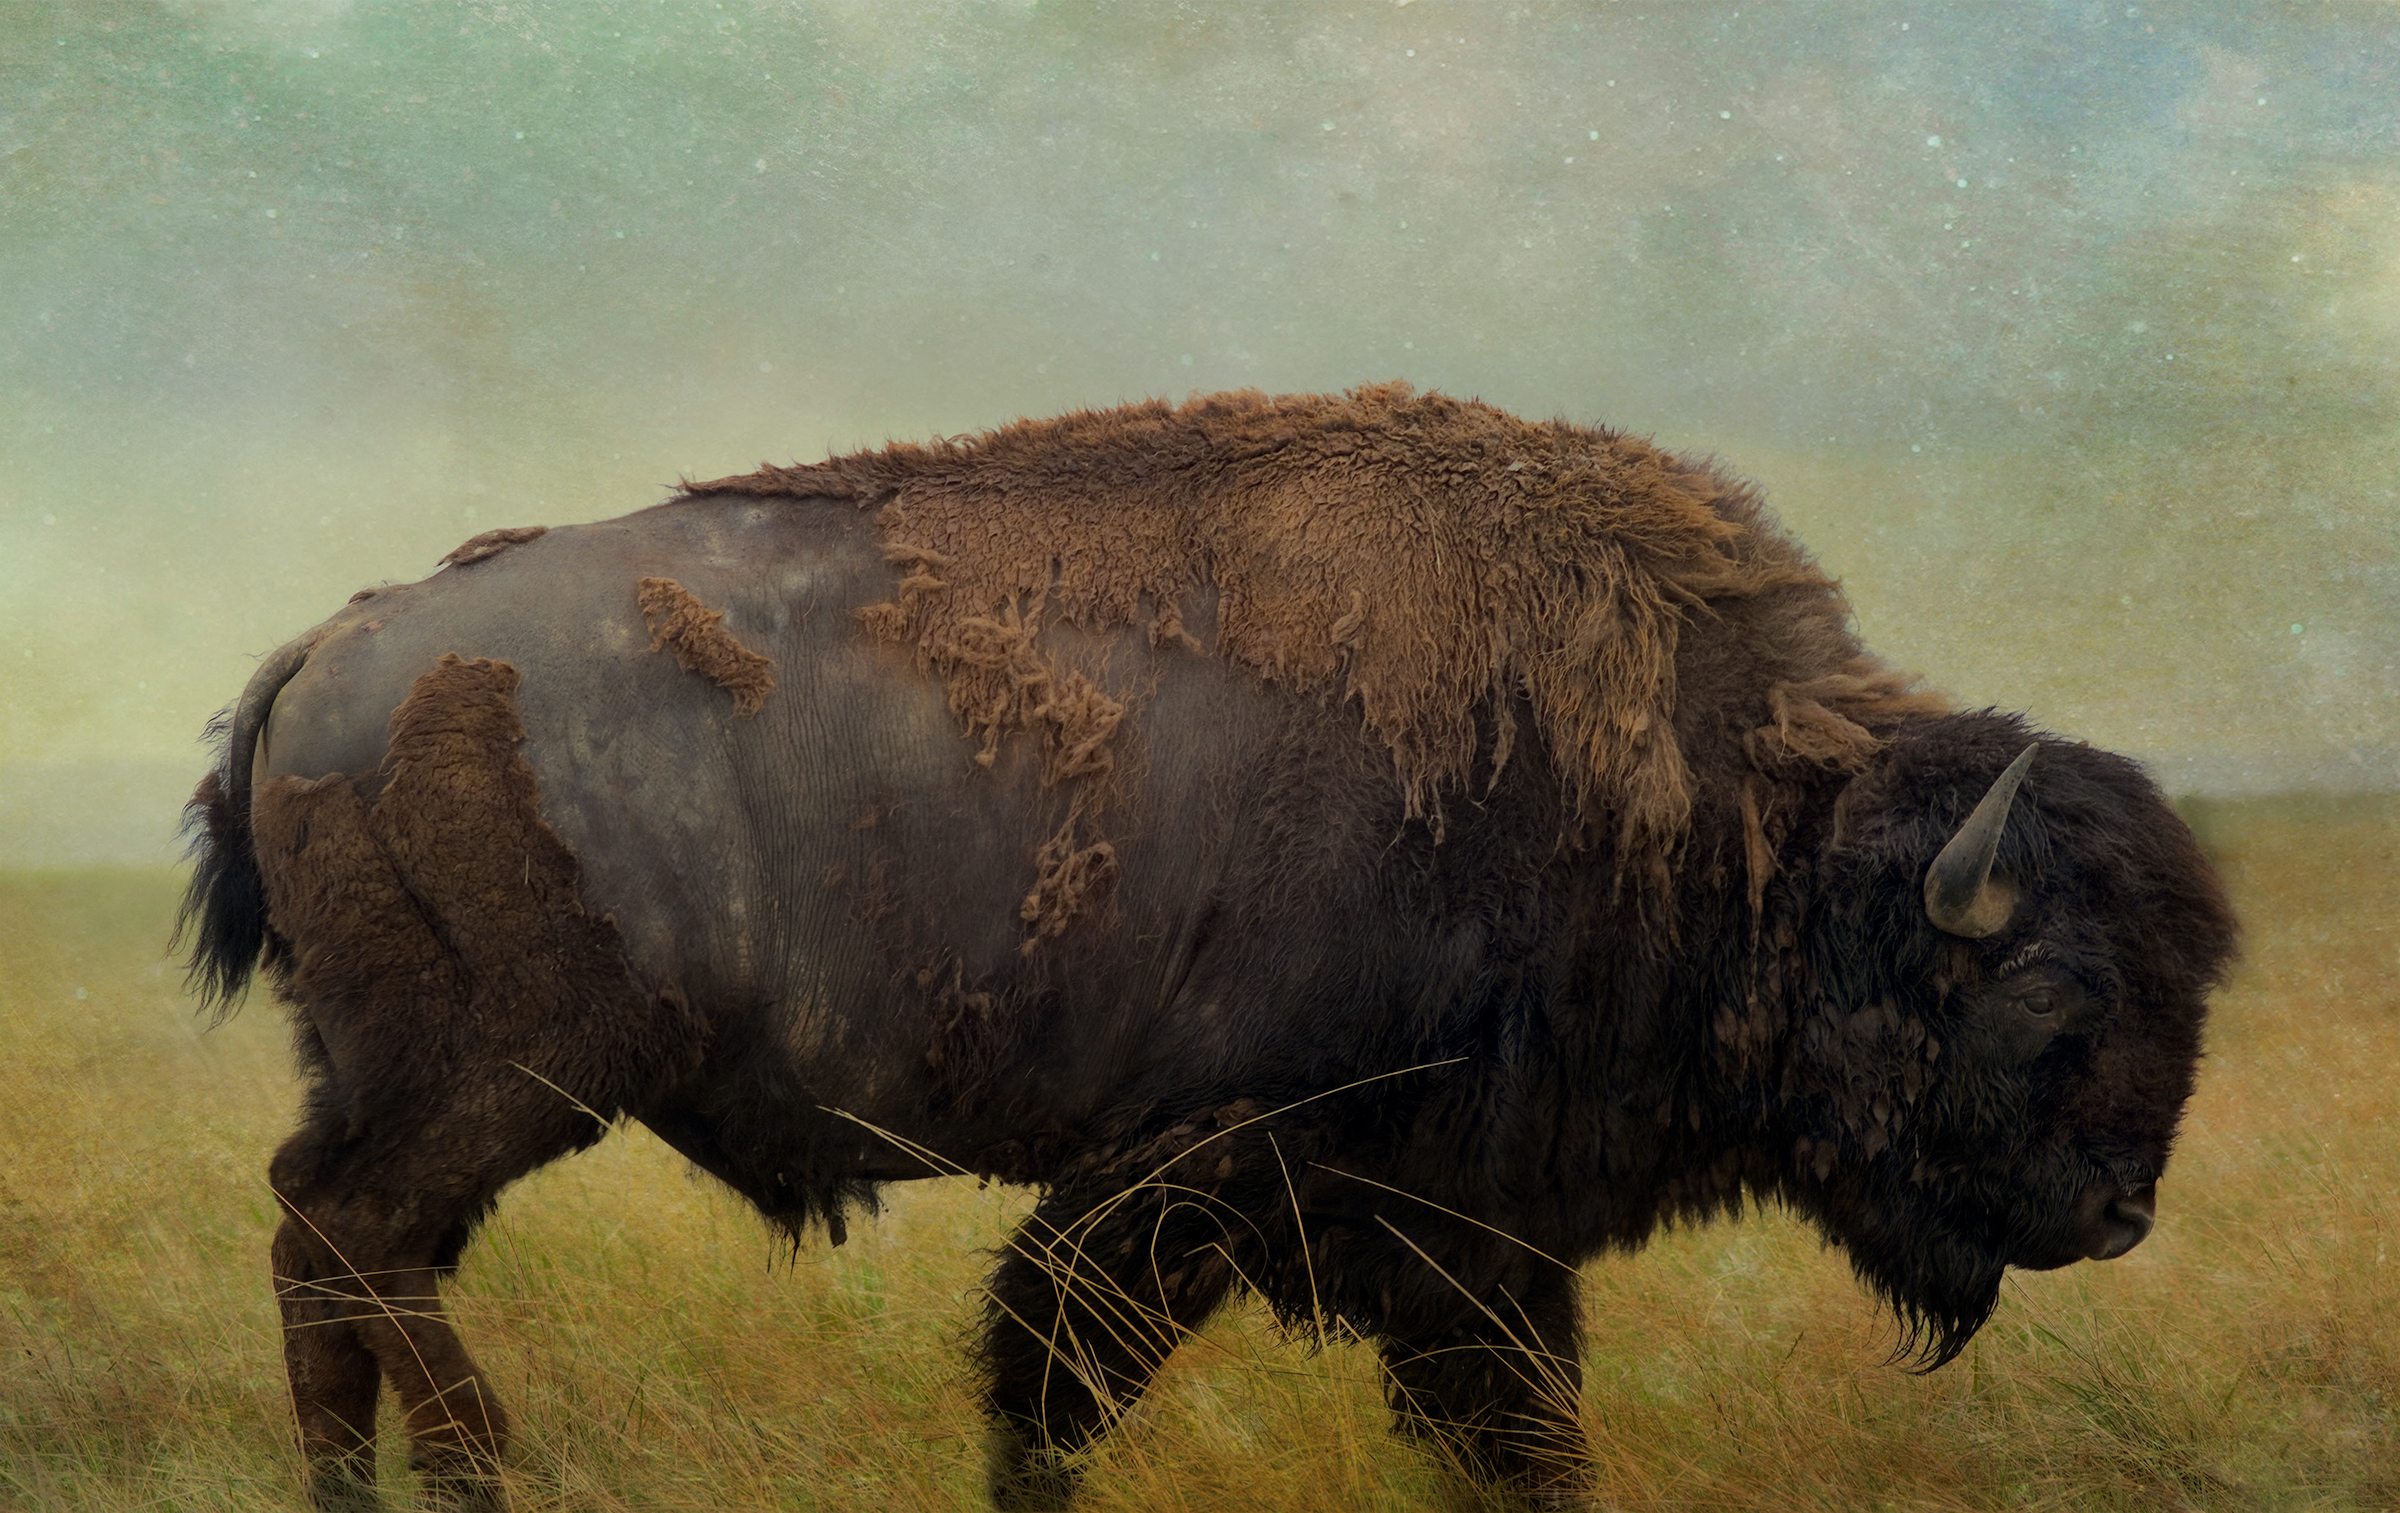 Badlands Bison #1 - Color